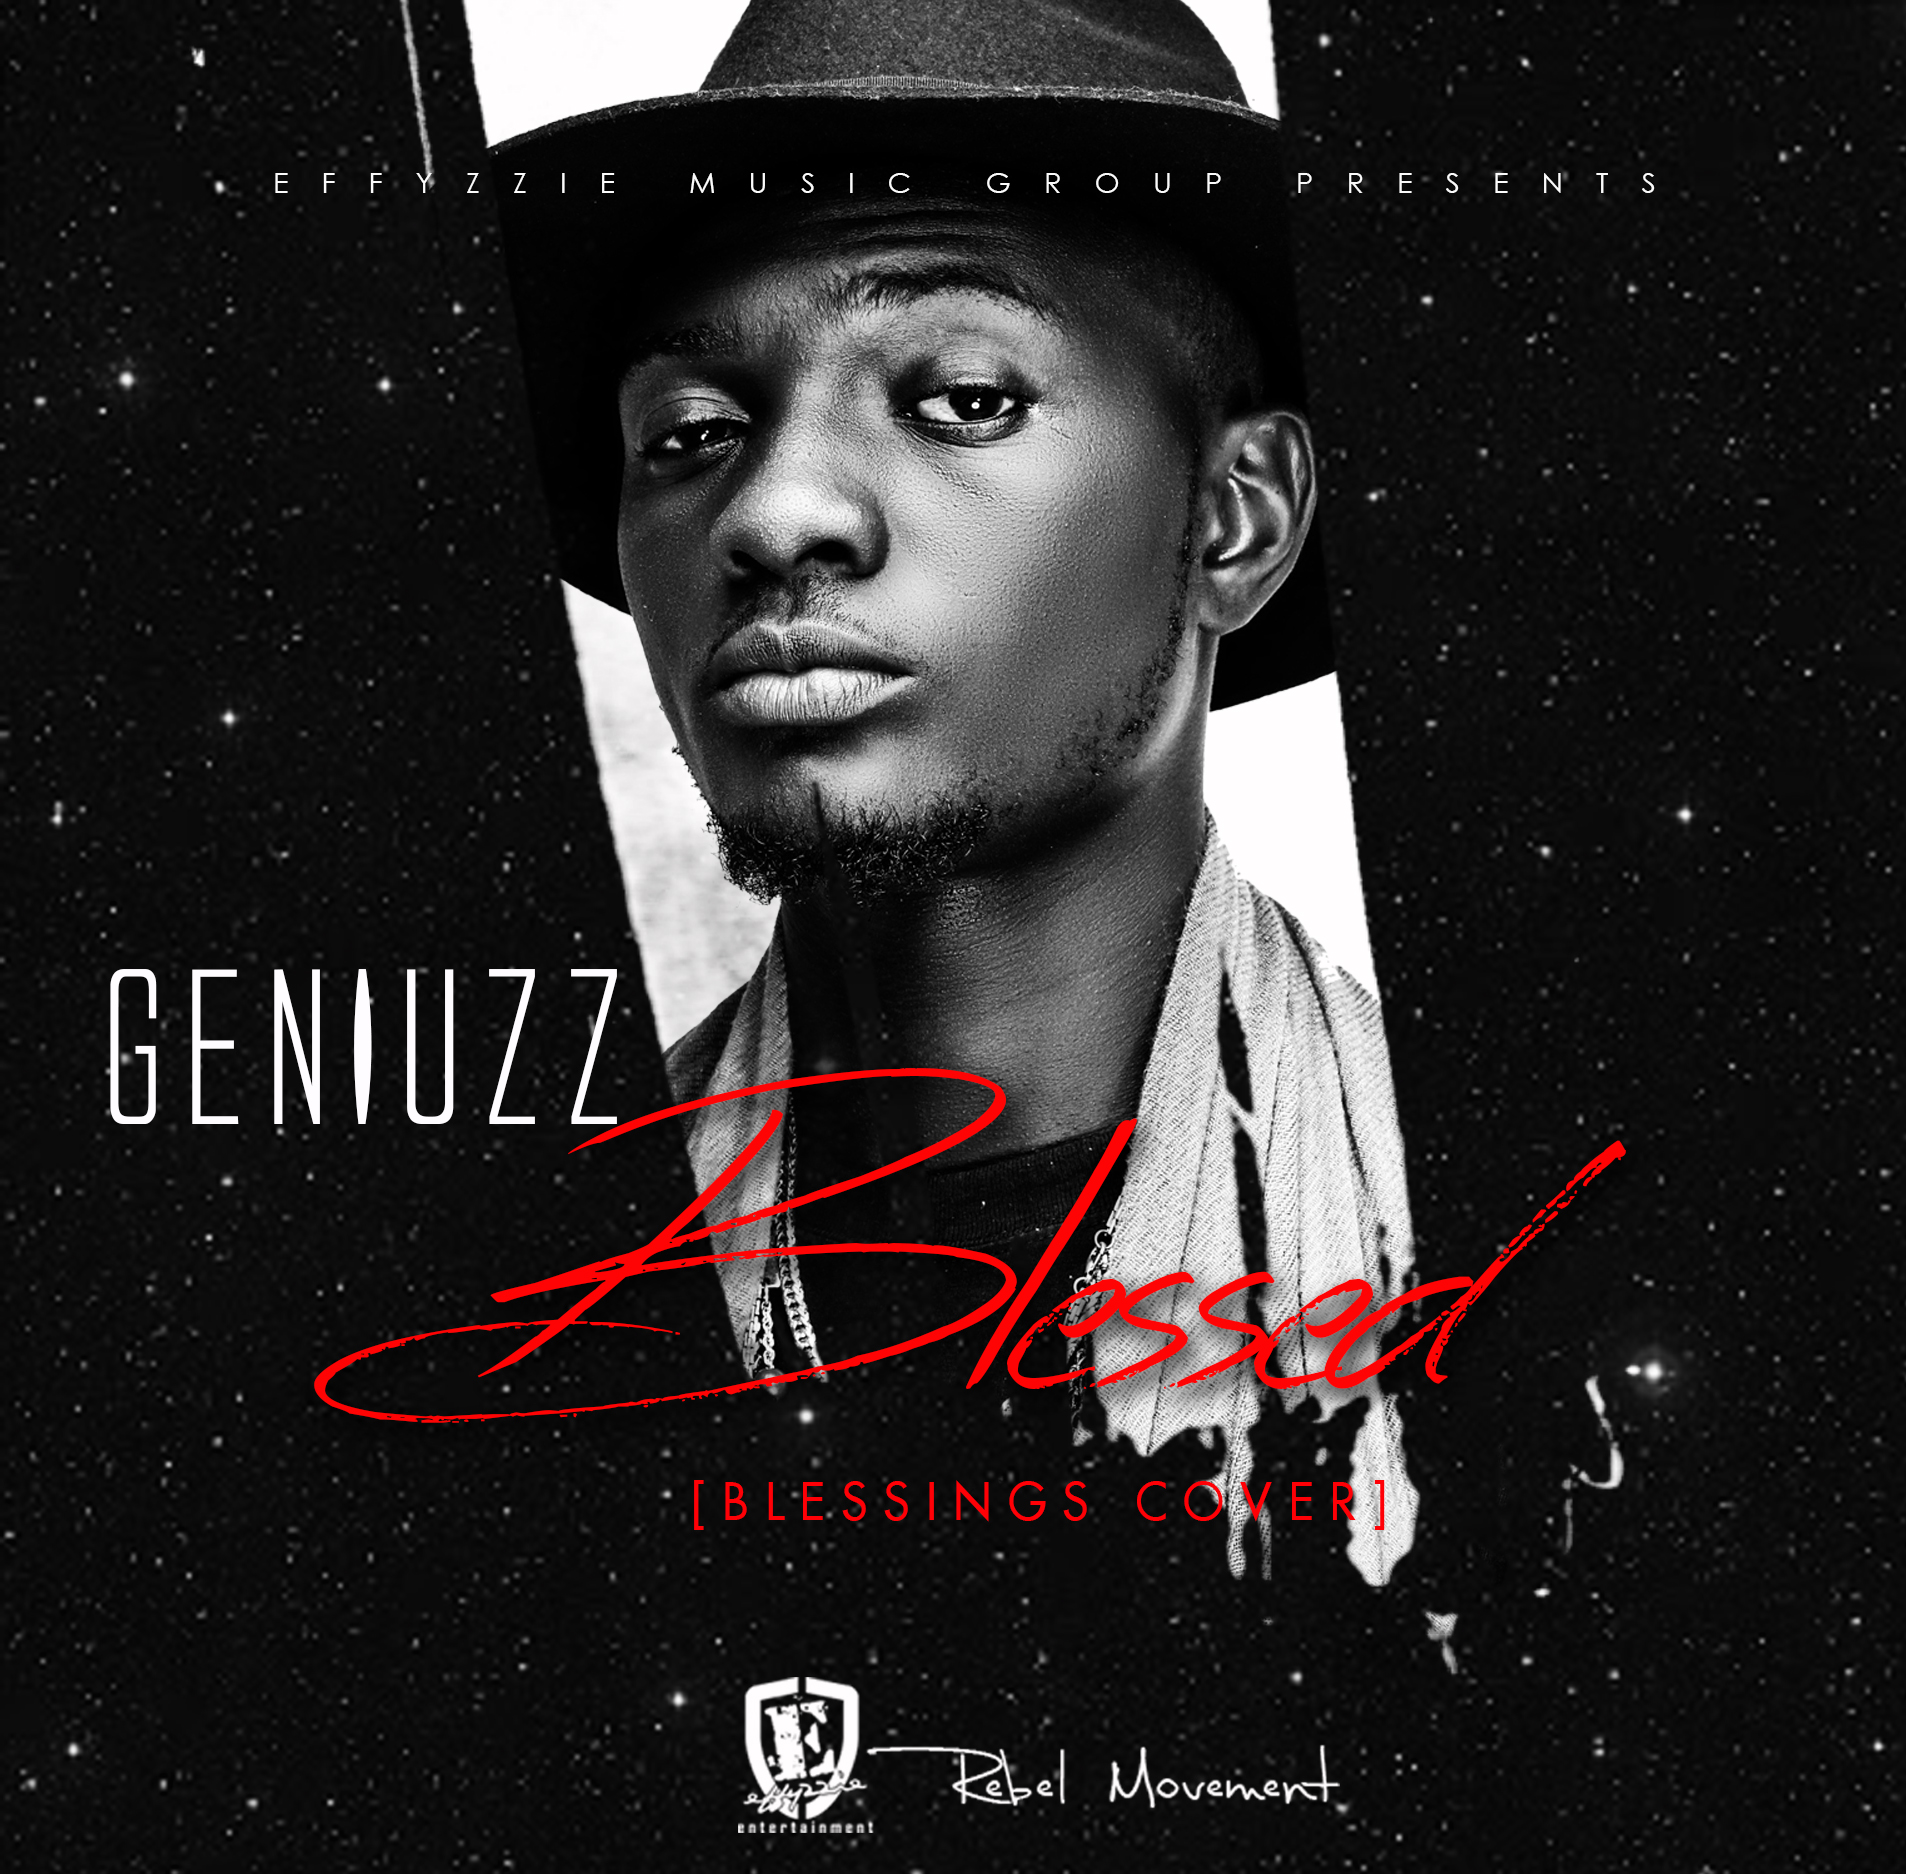 Geniuzz - Blessings (Big Sean Cover) - ART